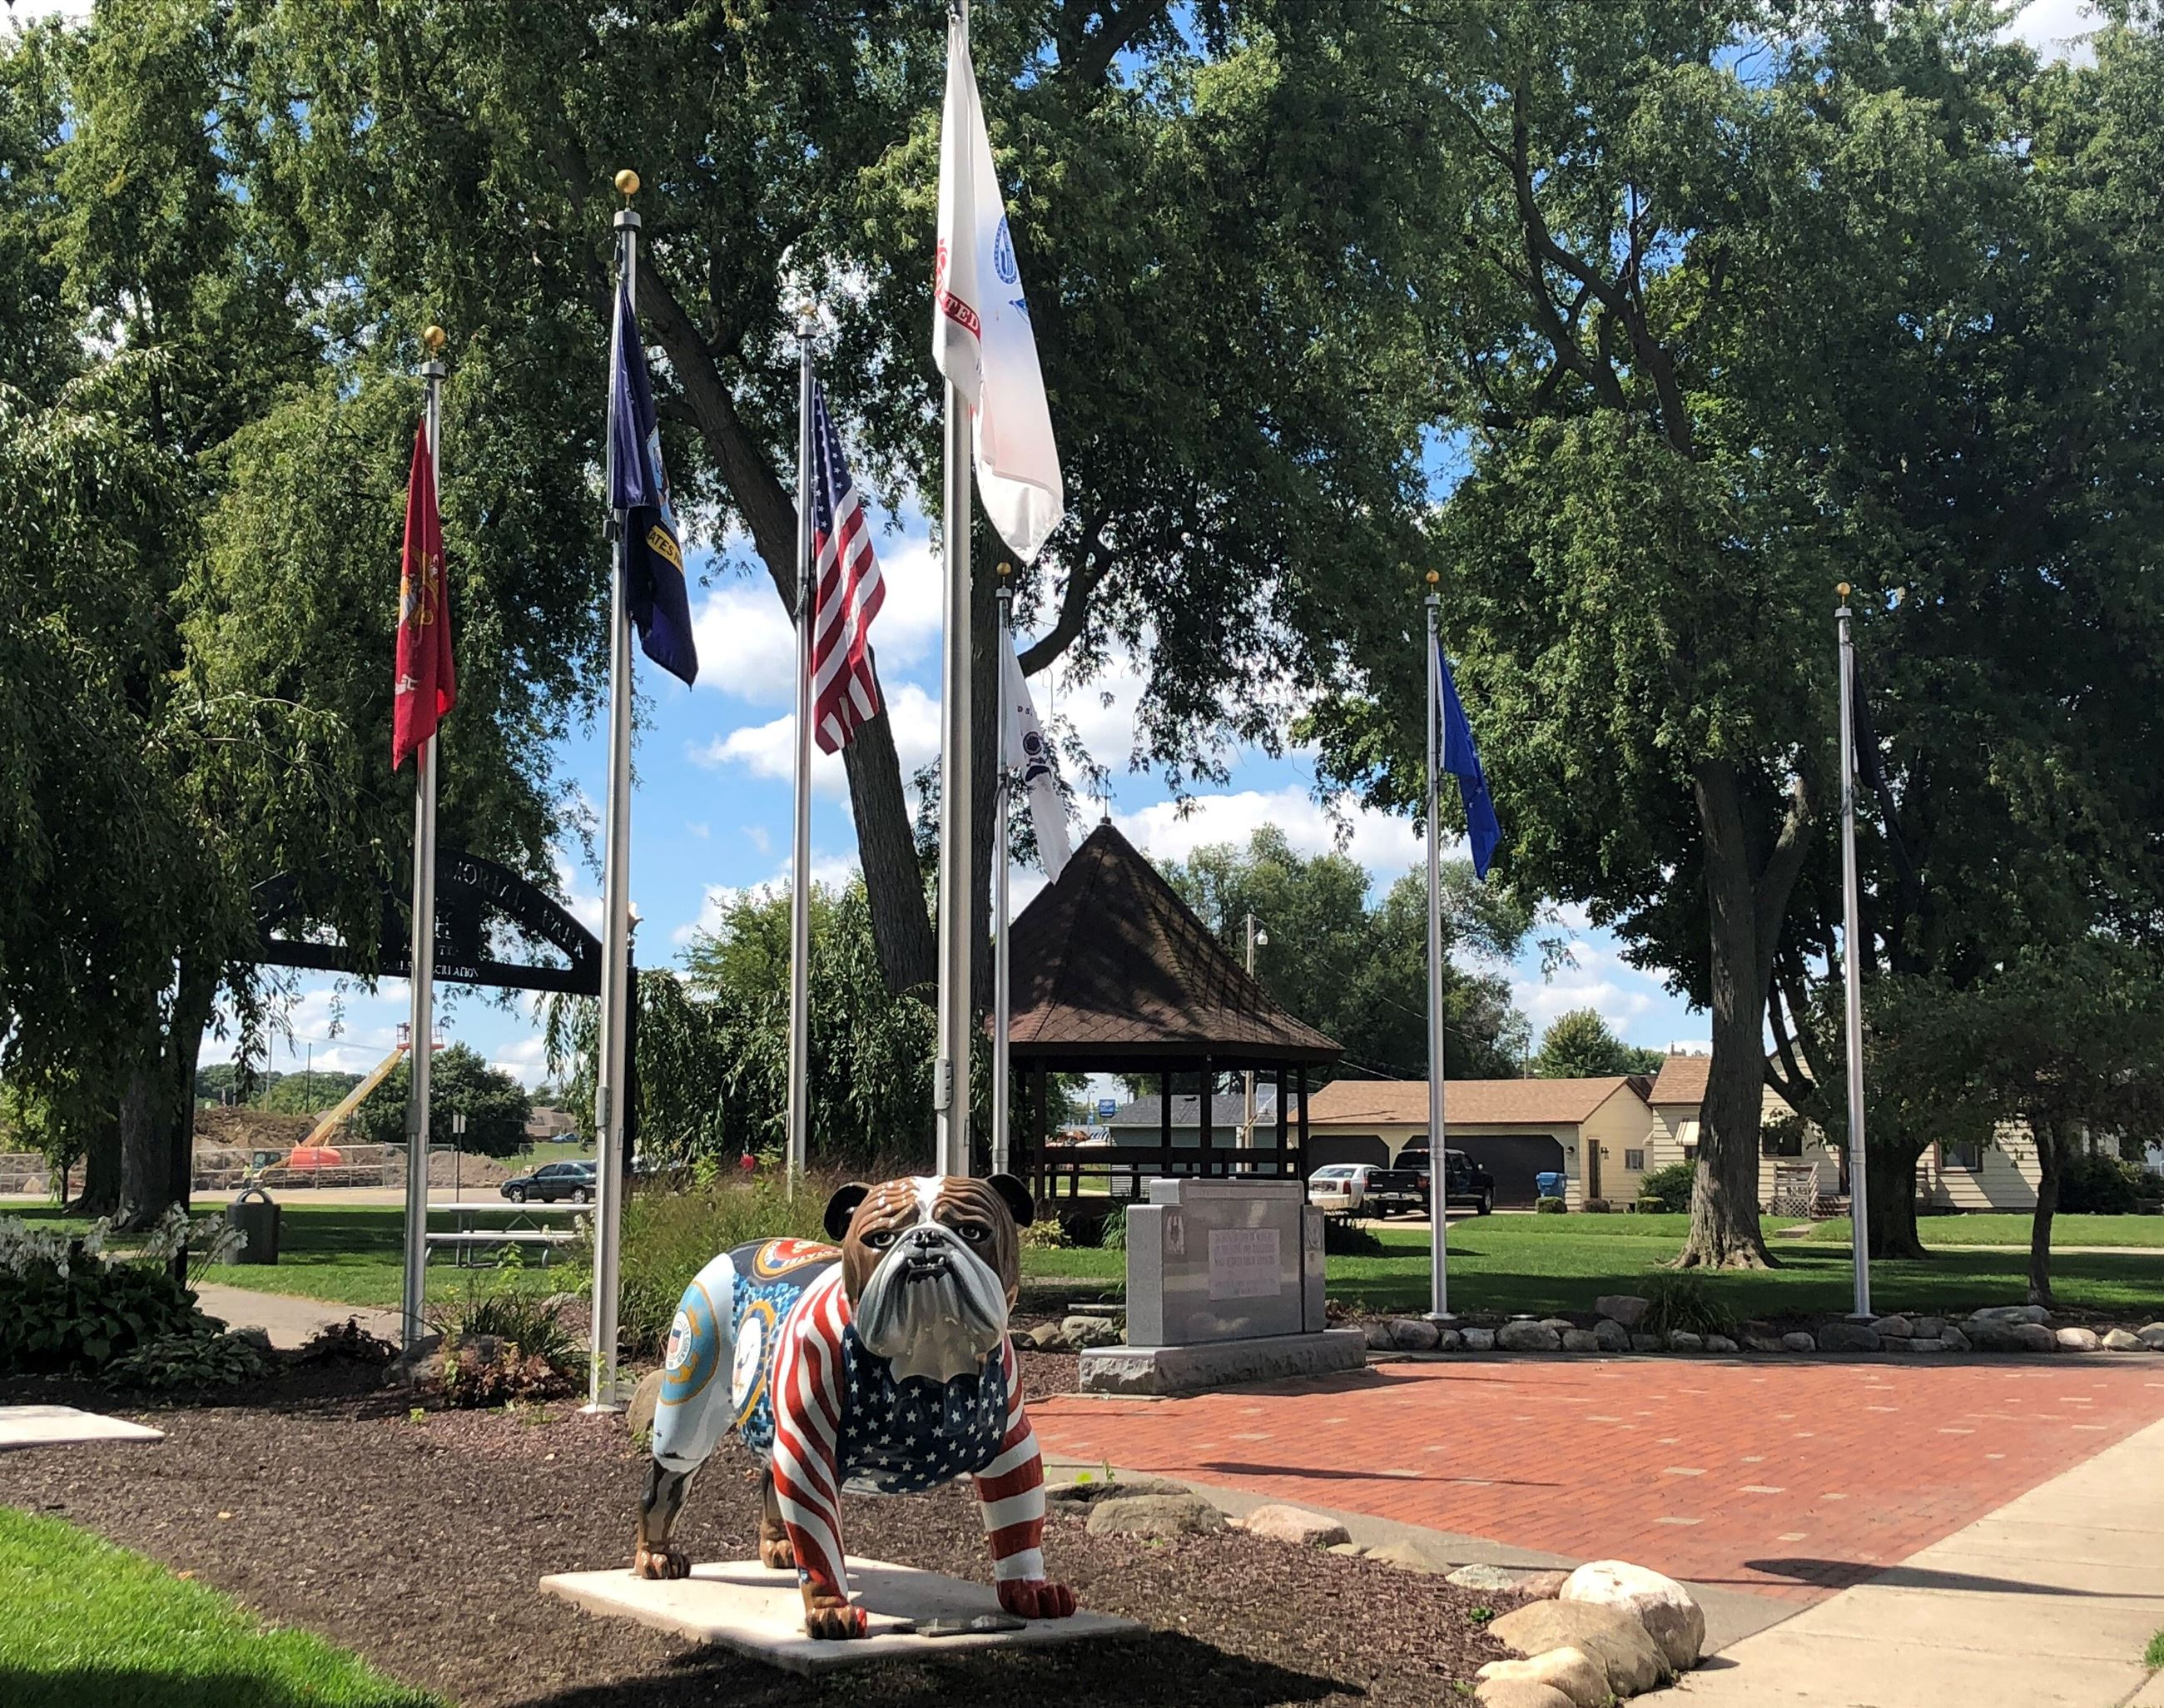 Dog statue and flags at Schnelker Park